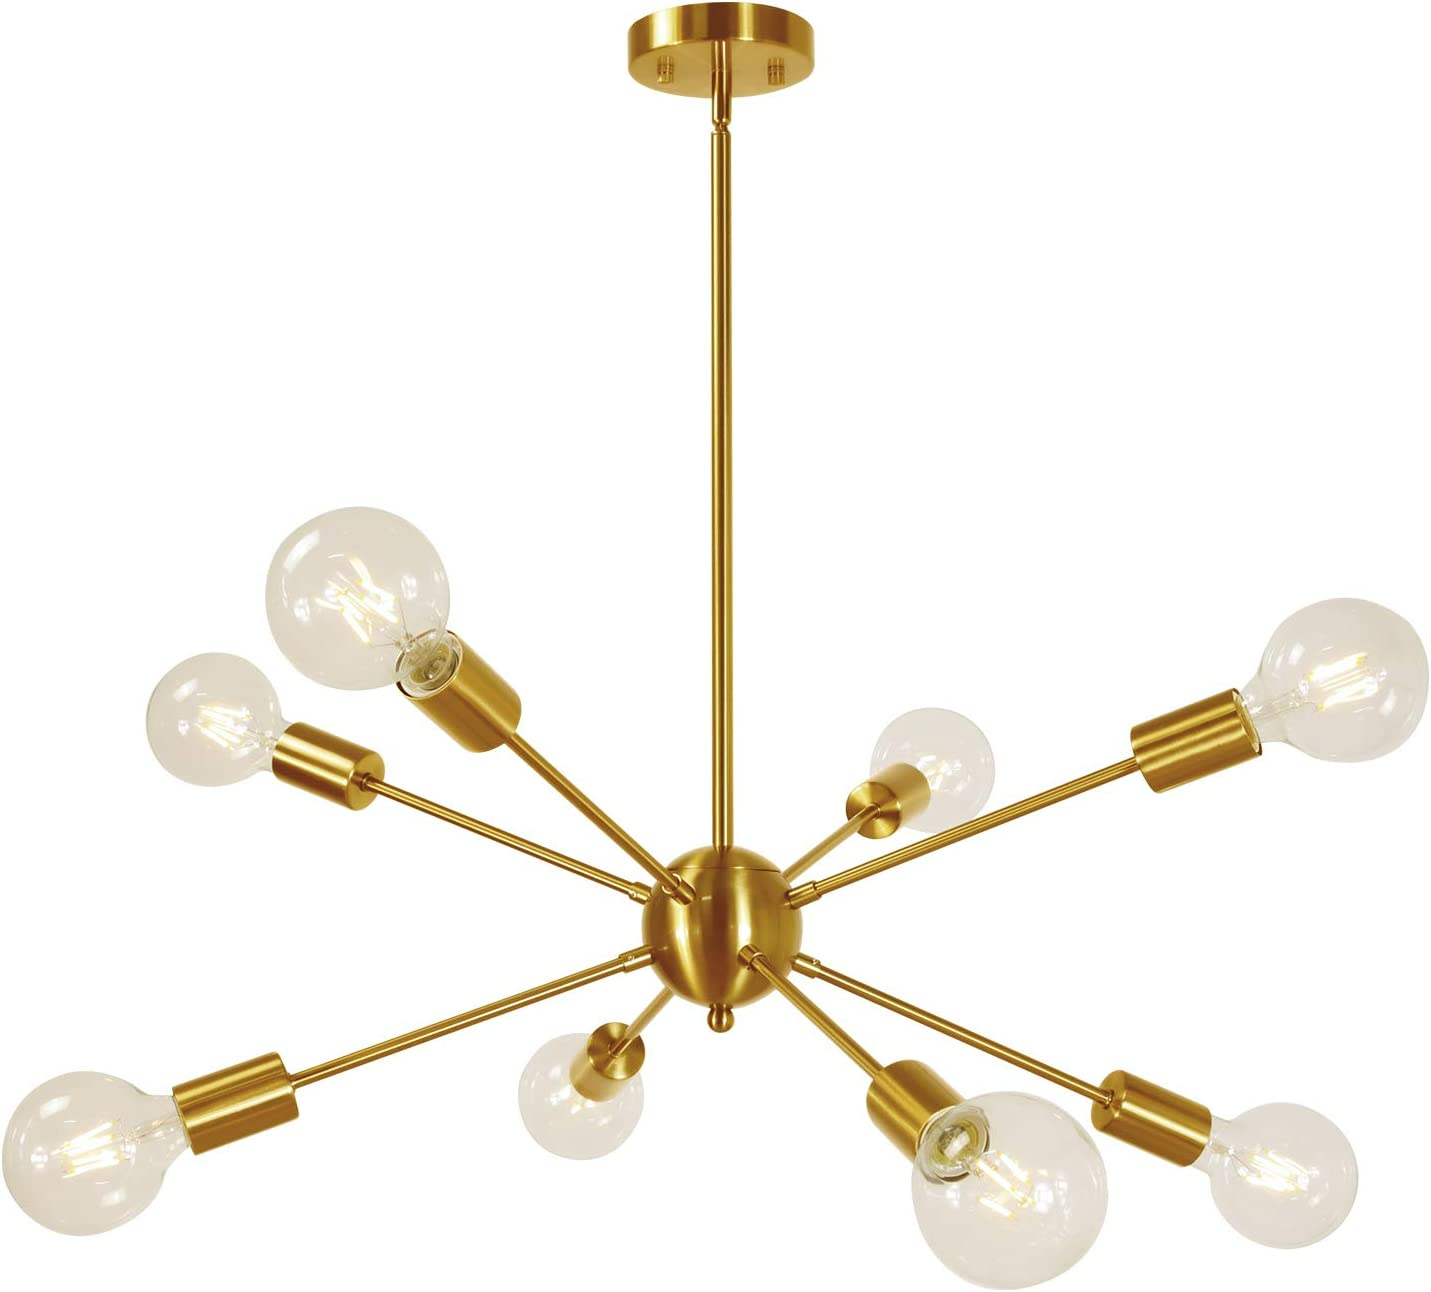 Sputnik Chandelier 8-Lights Brass Modern Pendant Lighting Mid Century Chandelier Semi Flush Mount Ceiling Light for Bedroom Living Foyer UL Listed